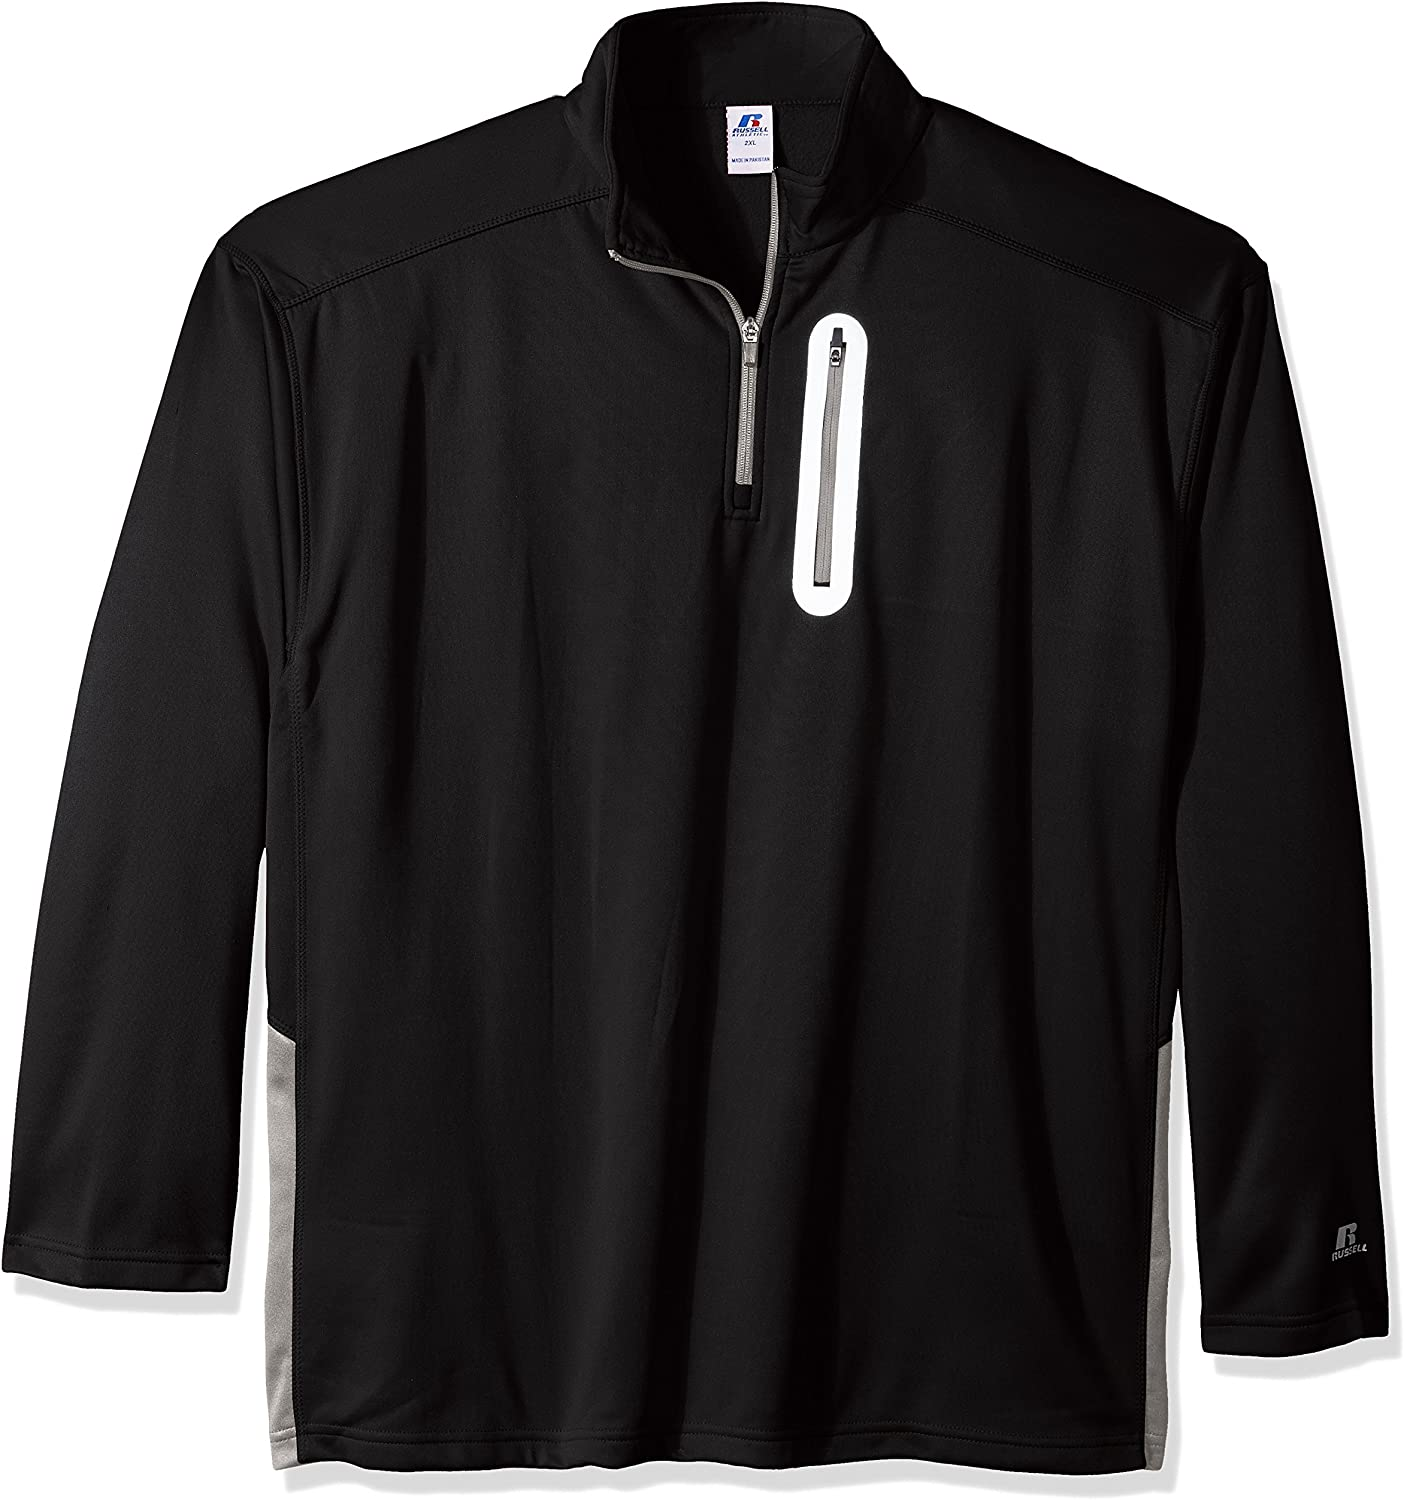 Russell Athletic Men's Big and Tall Ls 1/4 Lc Zip Pkt W/R Logo